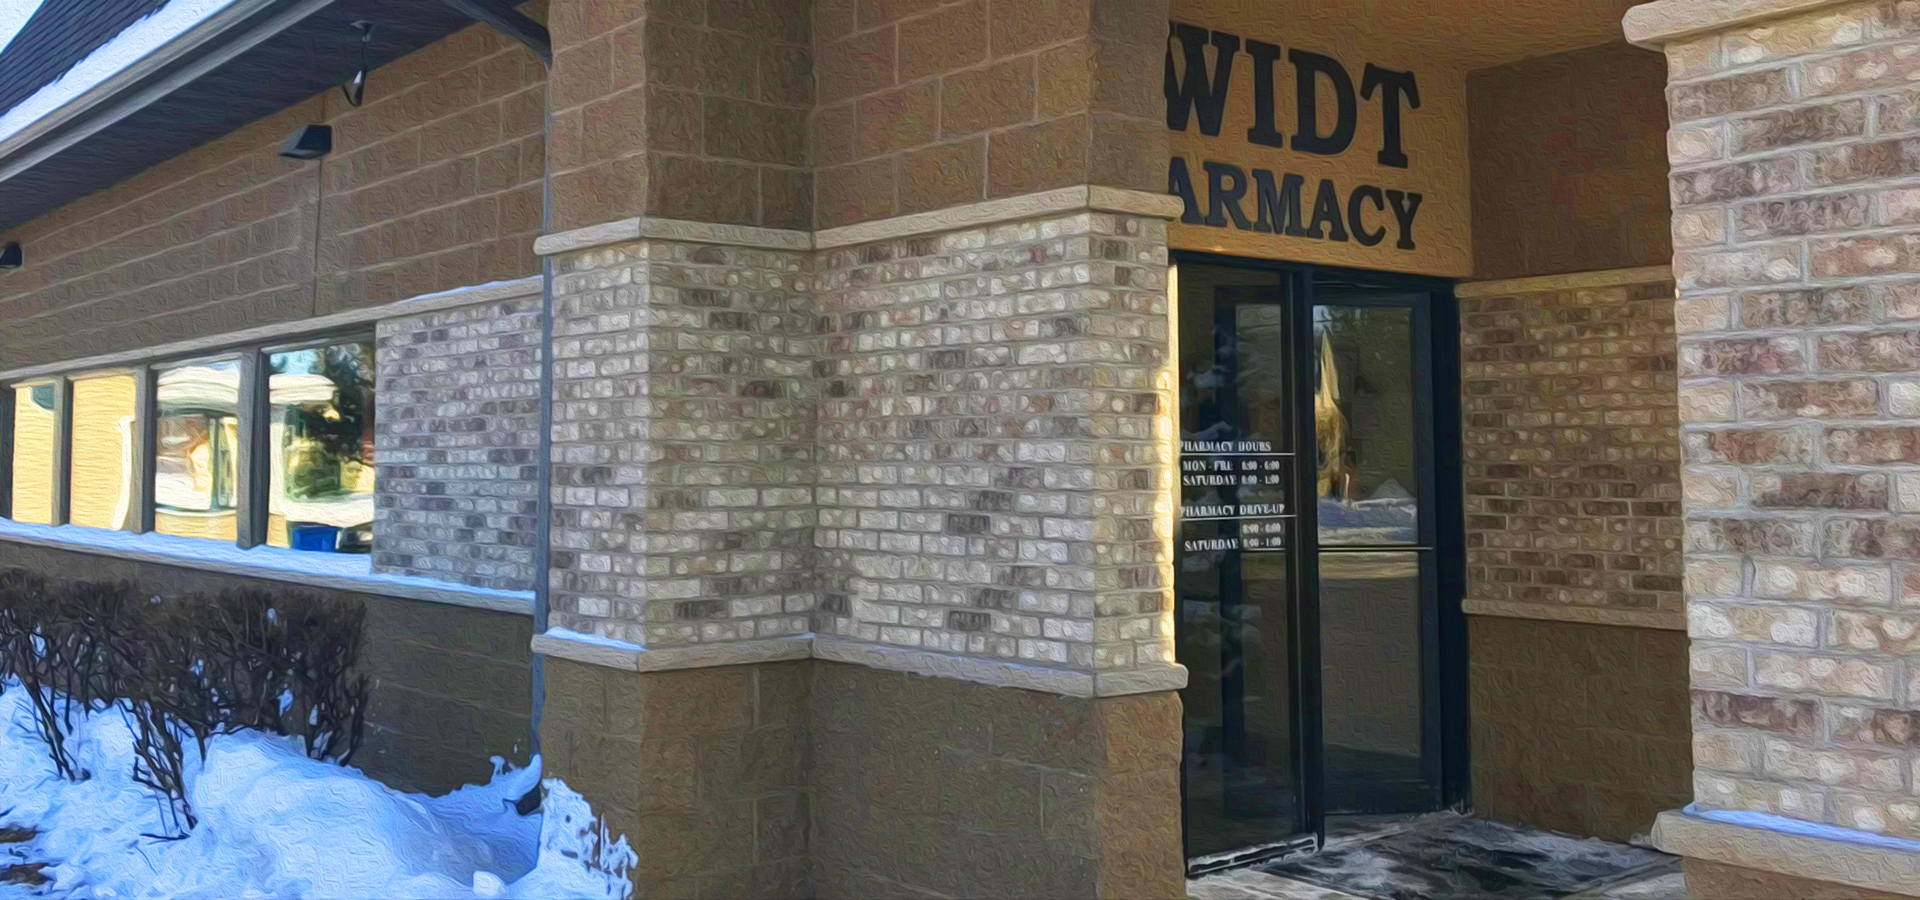 Welcome to GWIDT Pharmacy!